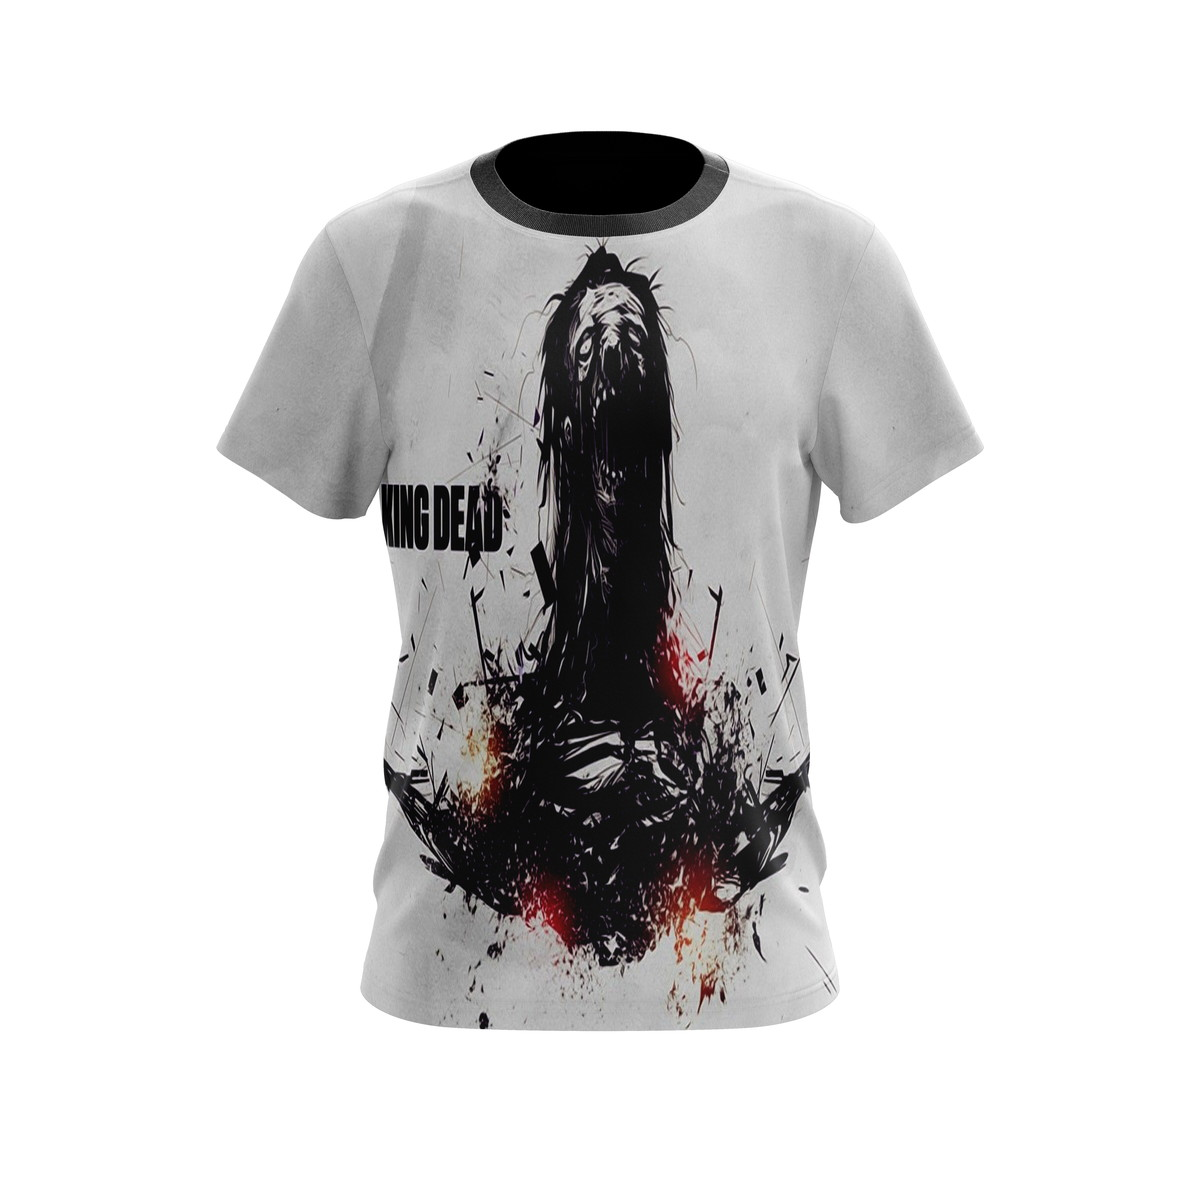 Camiseta Personalizada Criativa Estampa The Walking Dead M1 no Elo7 ... 7652a61fc7c